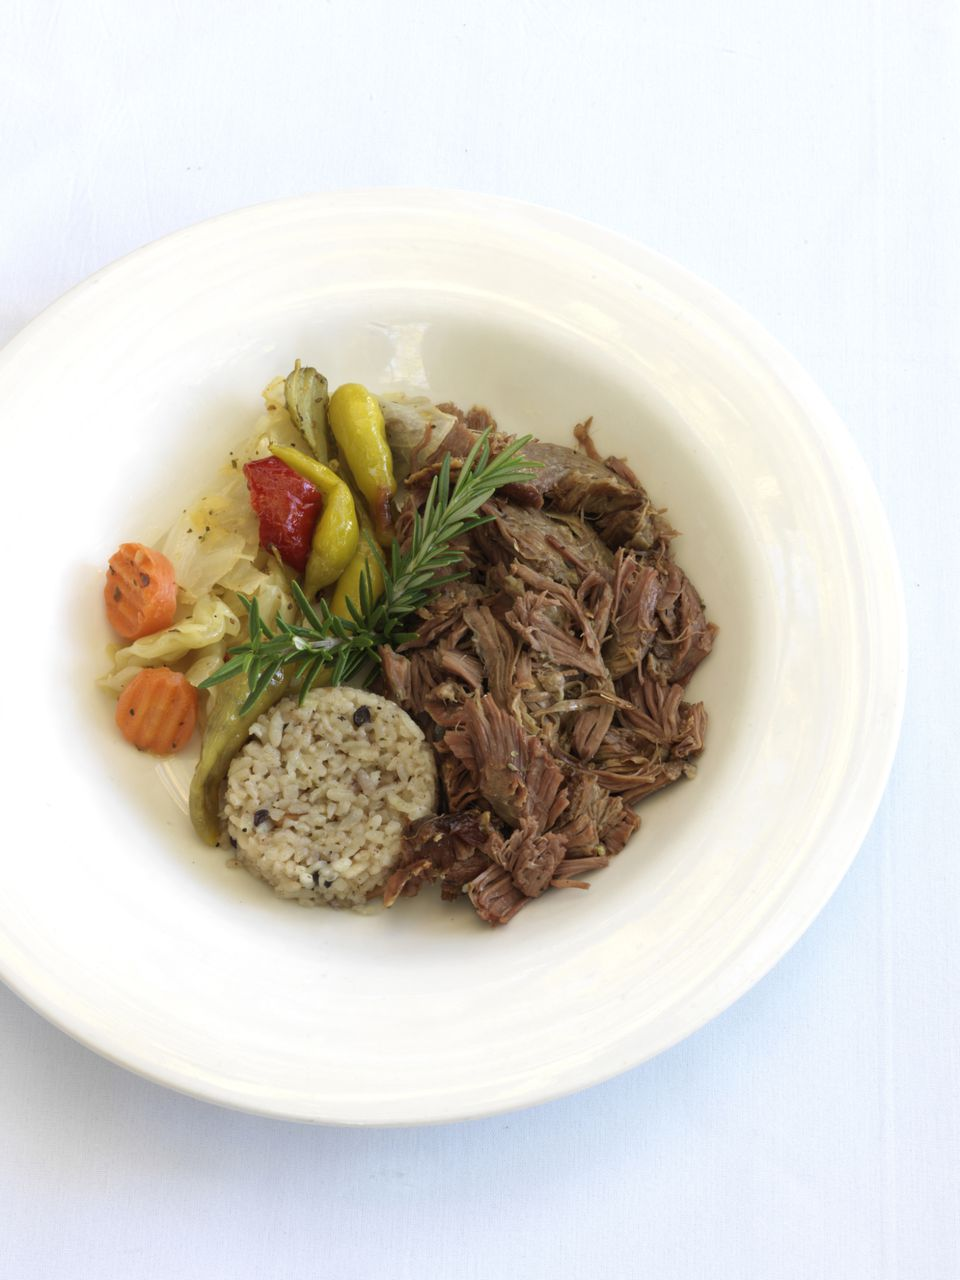 'Kavurma' is lamb slow cooked in its own juices until it melts in your mouth.